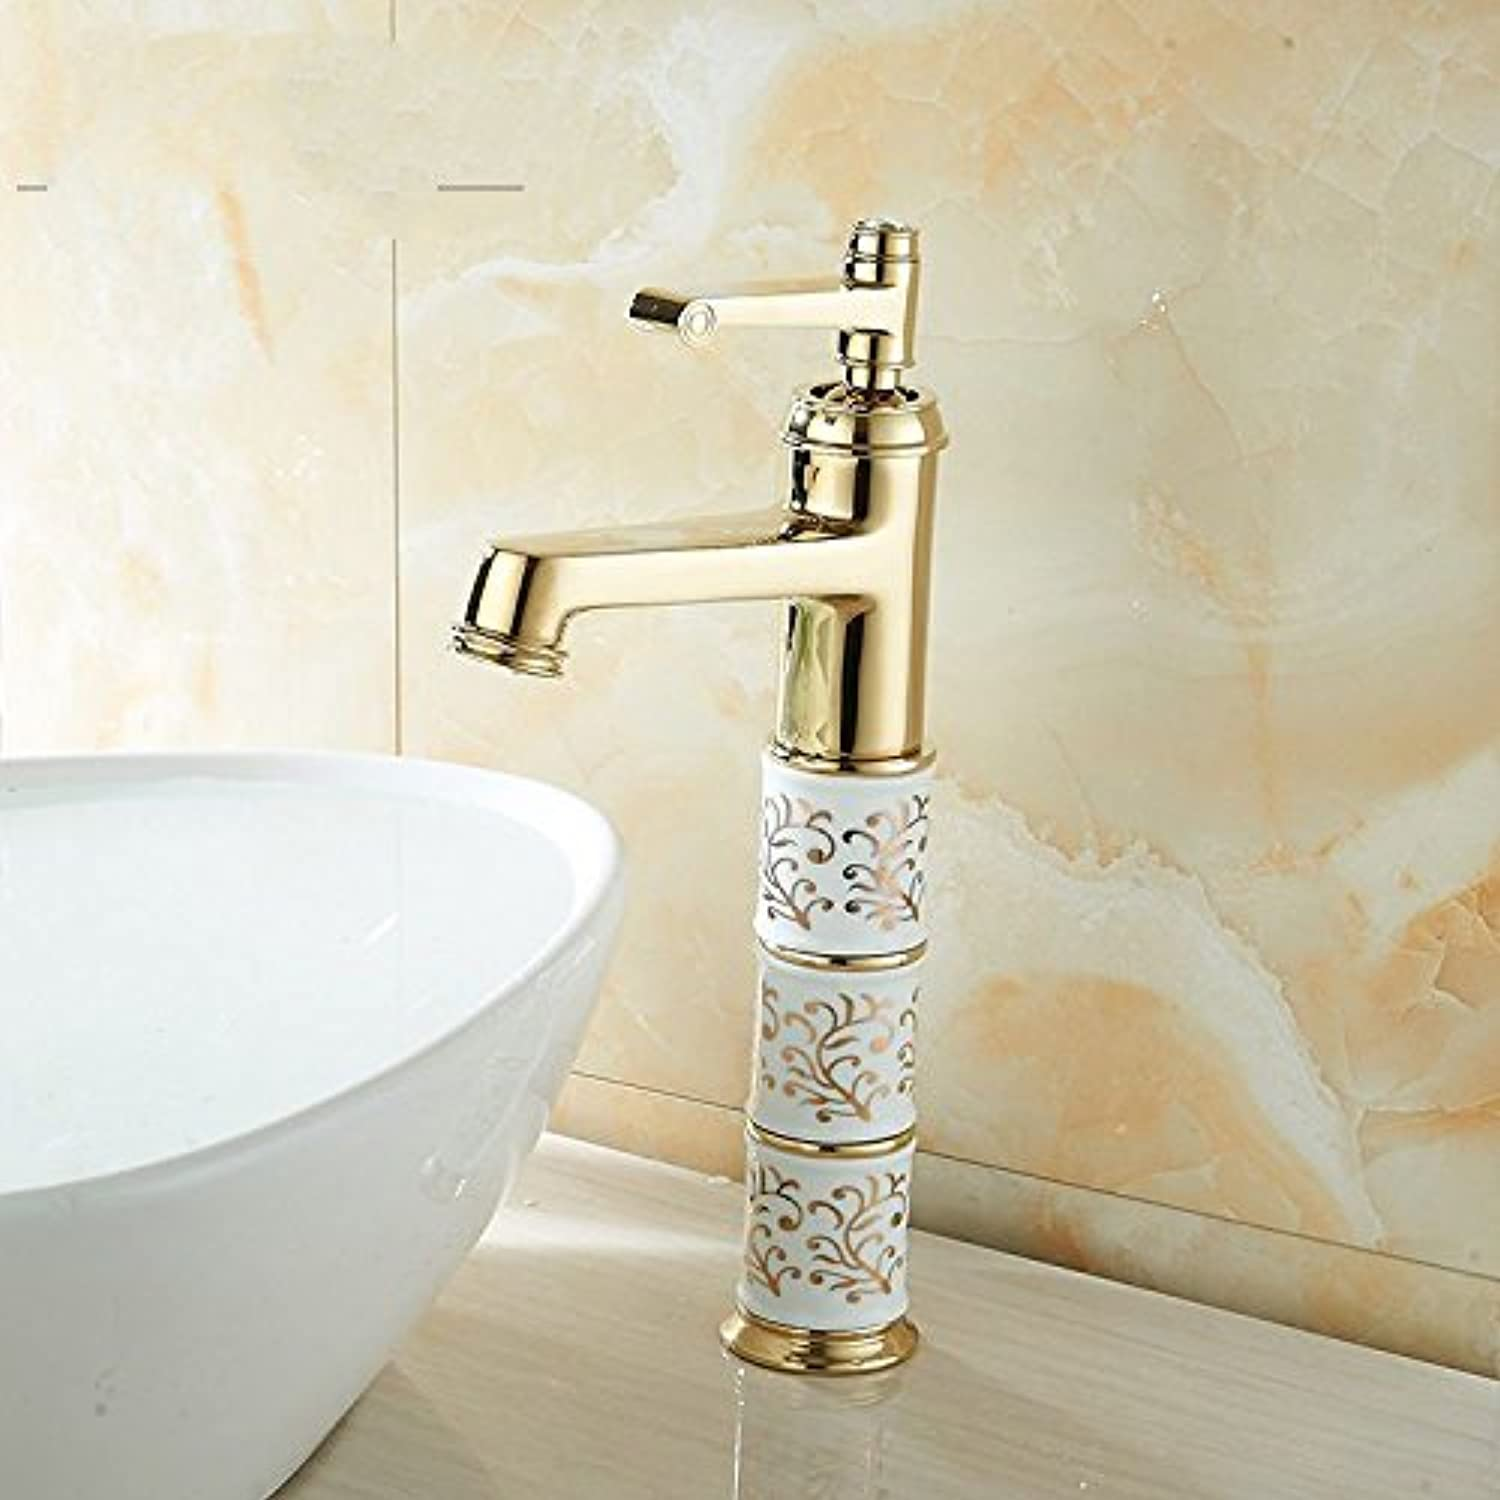 Lalaky Taps Faucet Kitchen Mixer Sink Waterfall Bathroom Mixer Basin Mixer Tap for Kitchen Bathroom and Washroom Hot and Cold All Copper gold Single Hole Antique